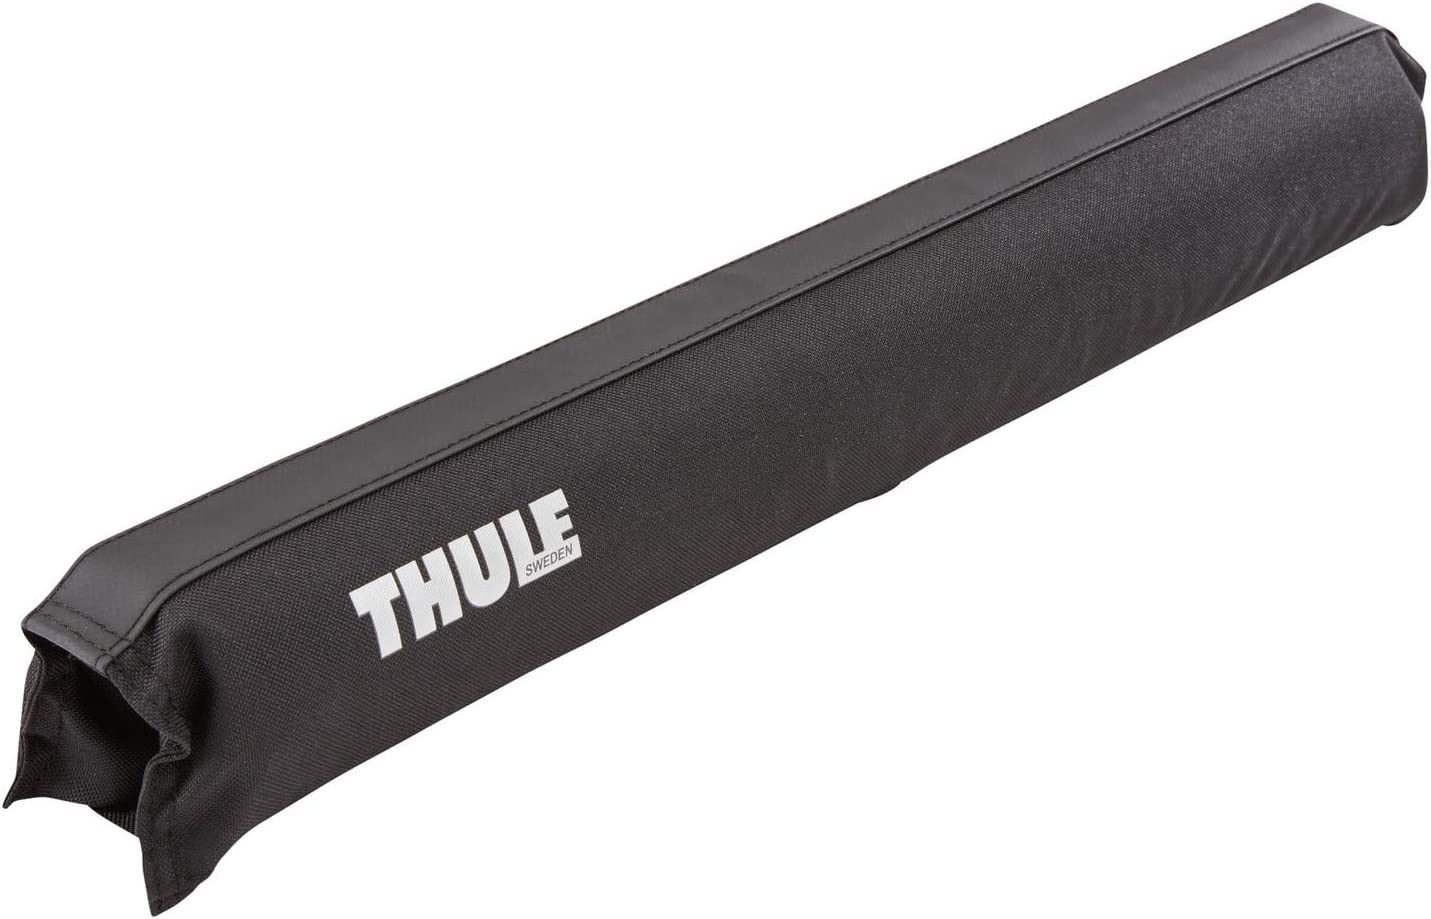 Thule Surf Roof Rack Pads